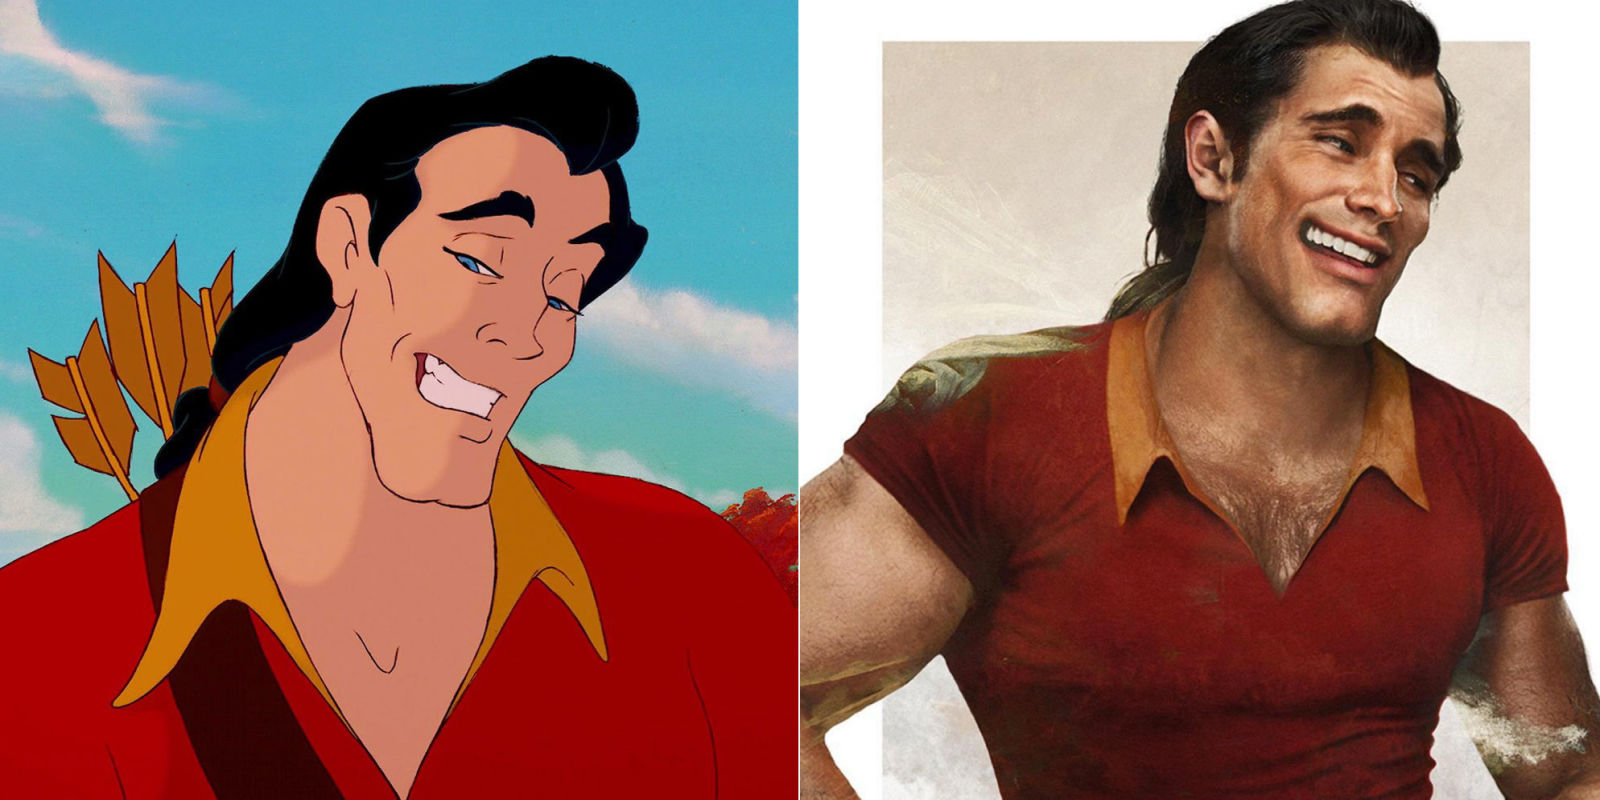 heres_what_disney_princes_would_look_like_in_real_life_by_Jirka_Väätäinen_10